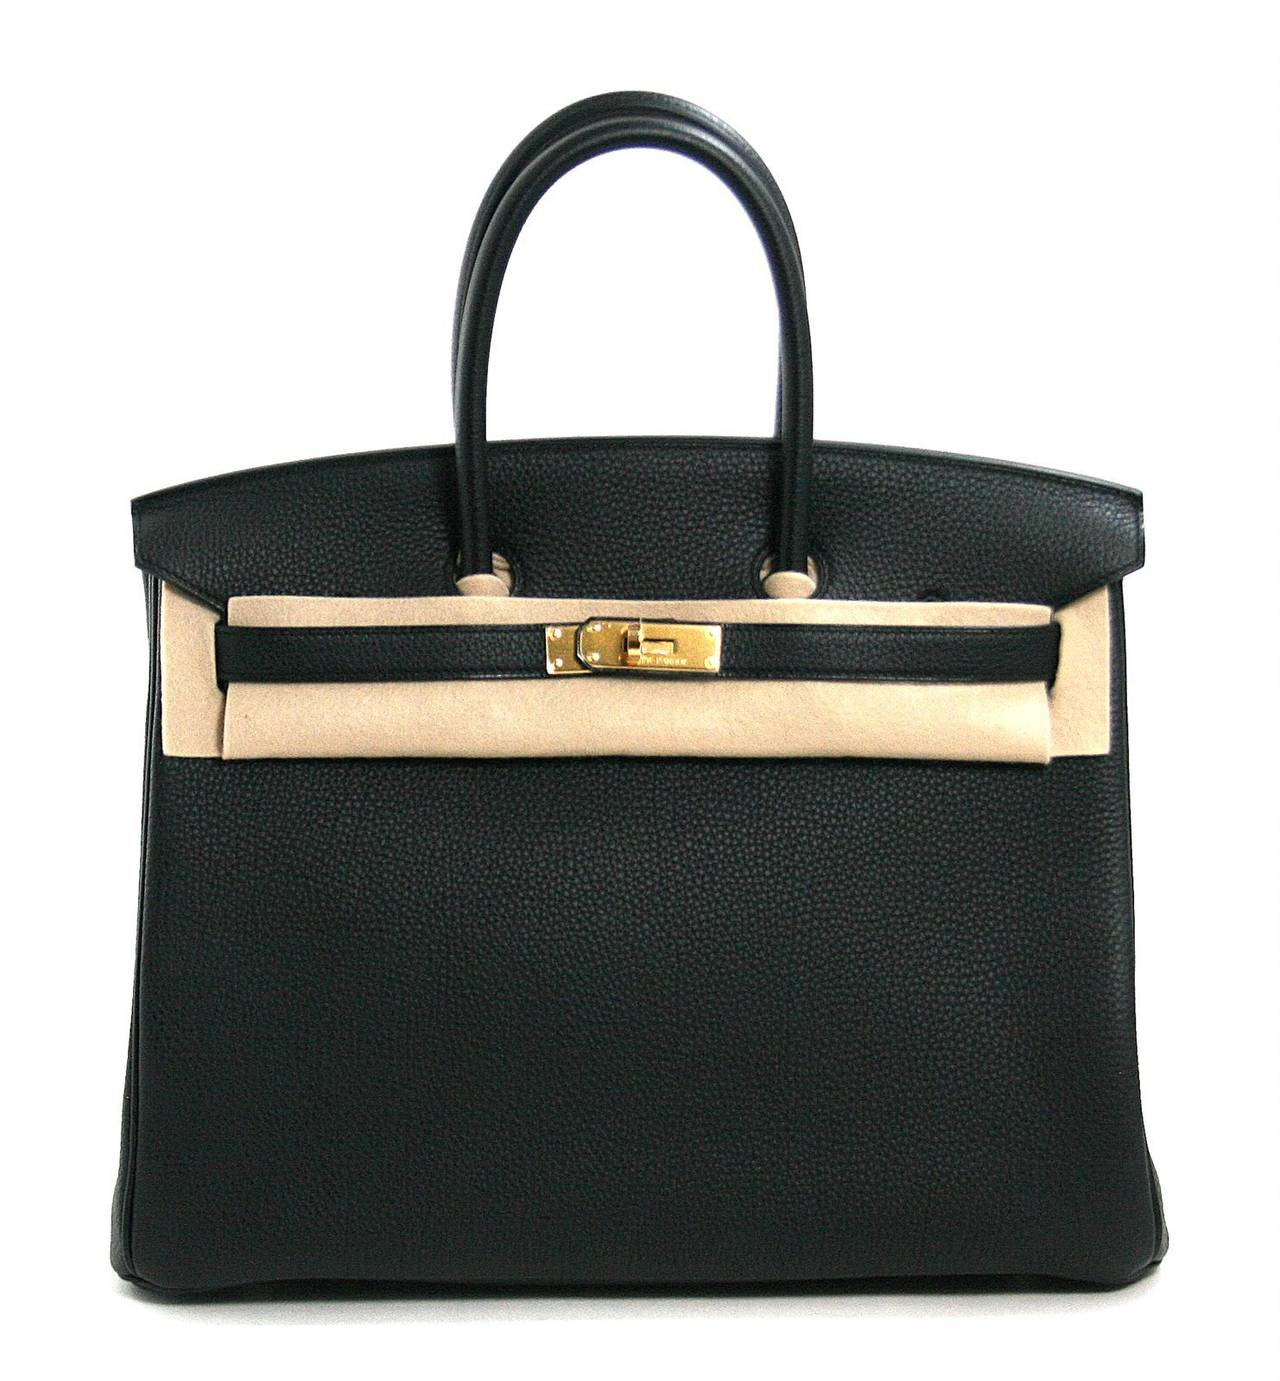 Hermes Birkin Bag- Black Togo Leather, Gold Hardware 35 cm size at ...